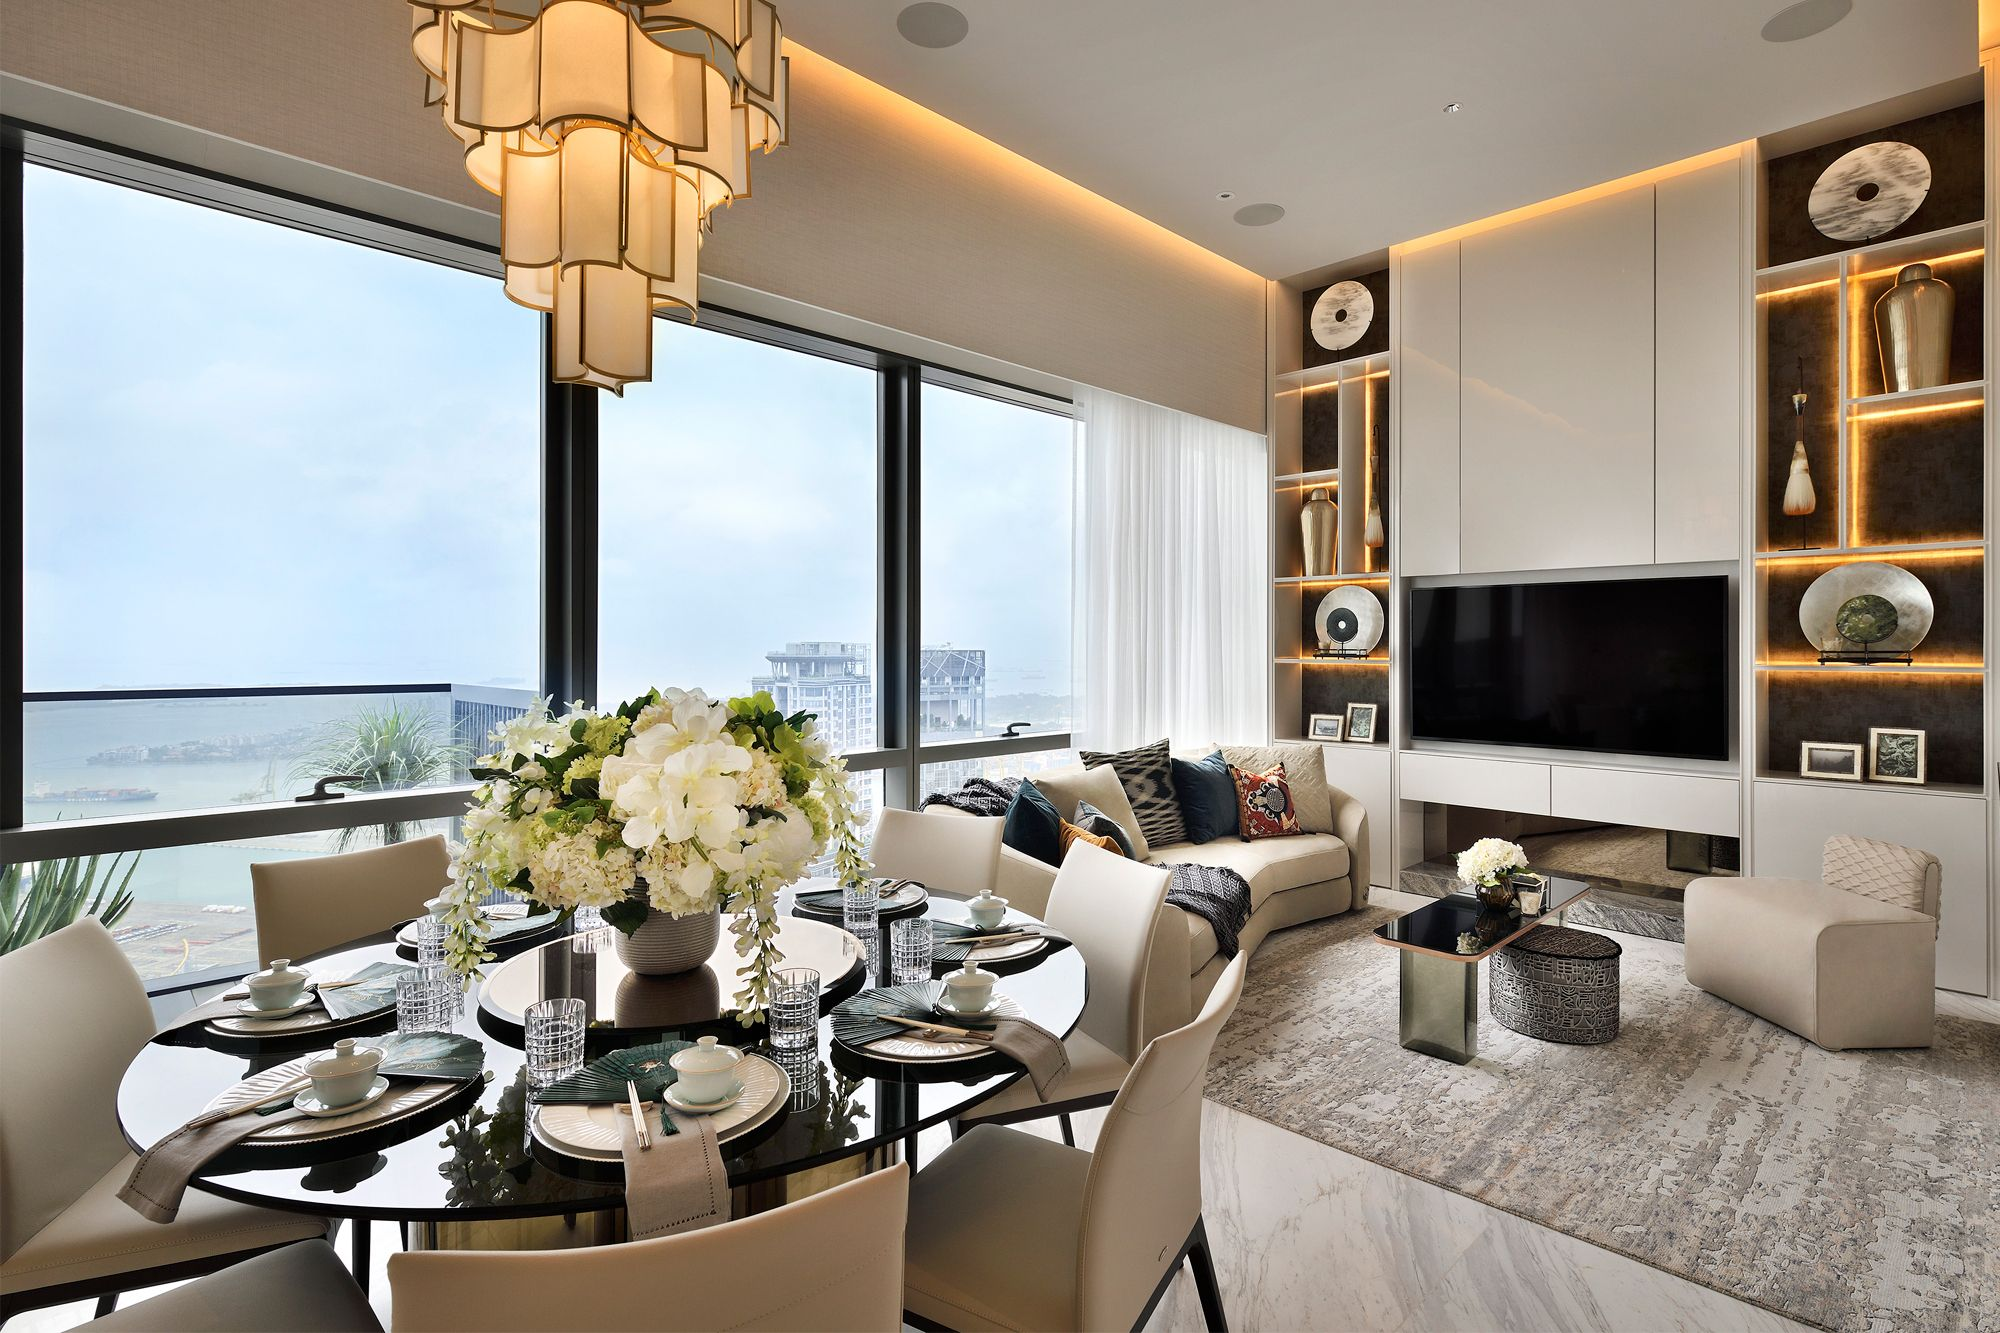 An elegant apartment accentuated by layers of off-white furnishings and styling elements